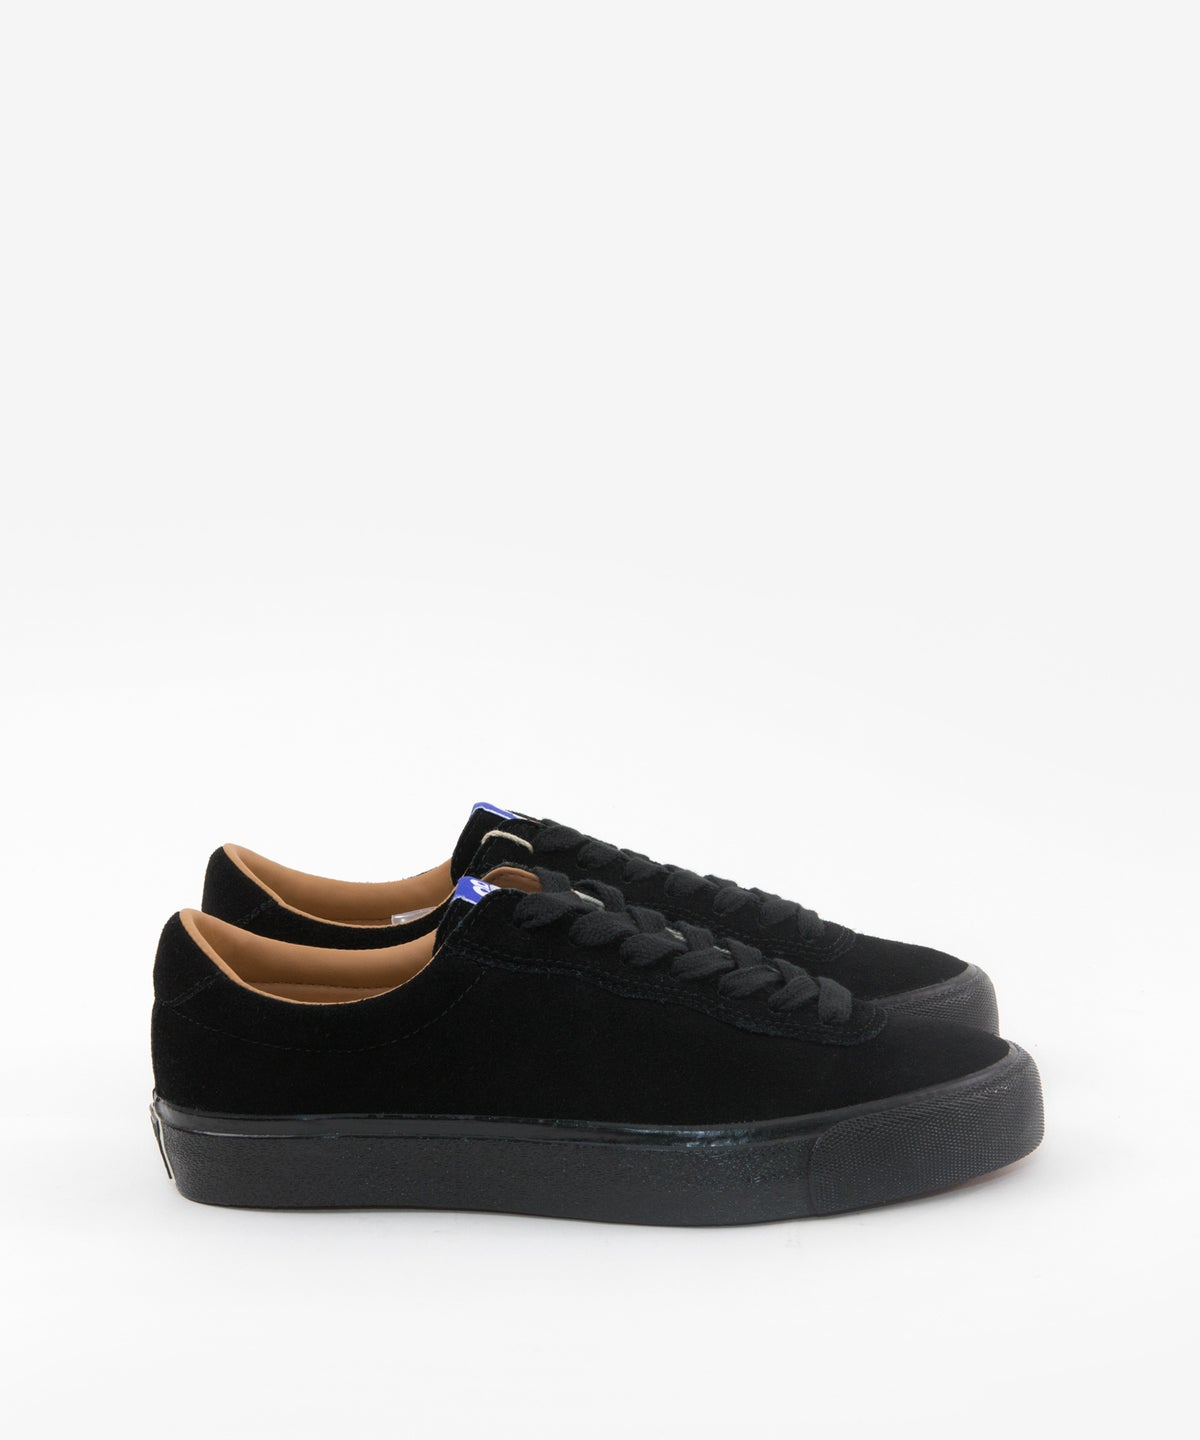 Image of LAST RESORT AB_VM001 SUEDE LO :::BLACK/BLACK:::